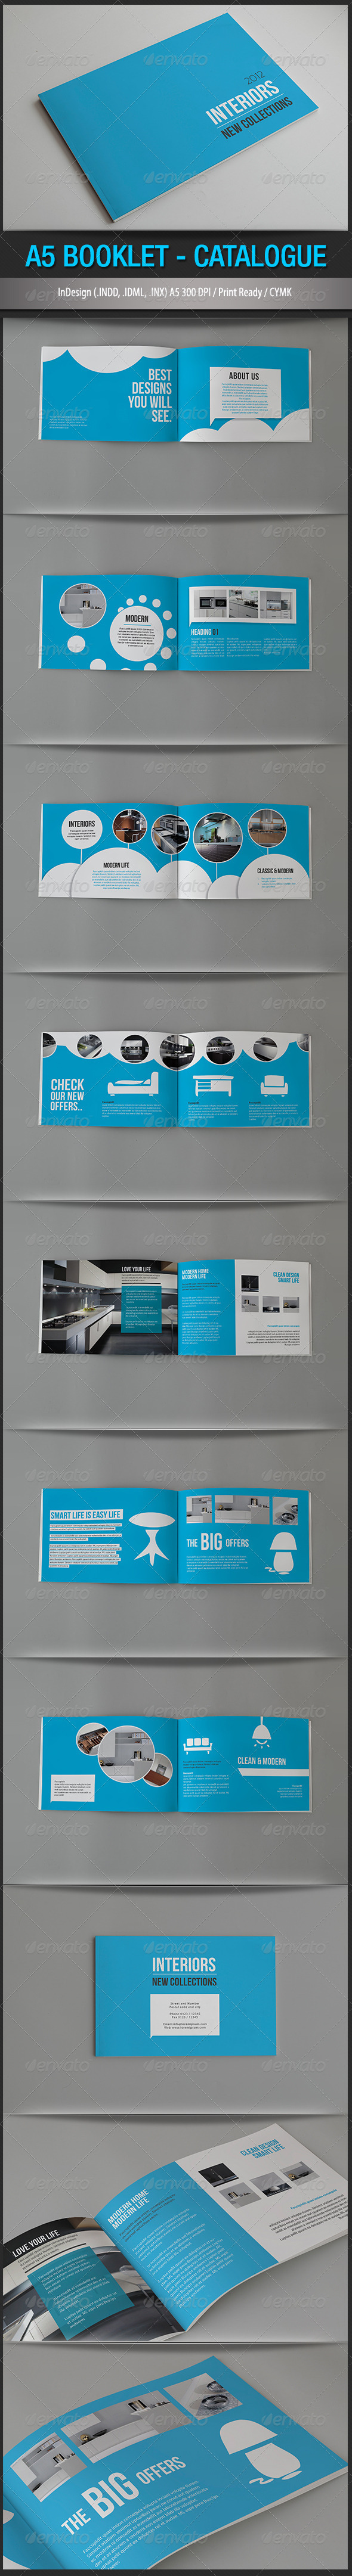 GraphicRiver A5 Booklet Catalogue 1529085